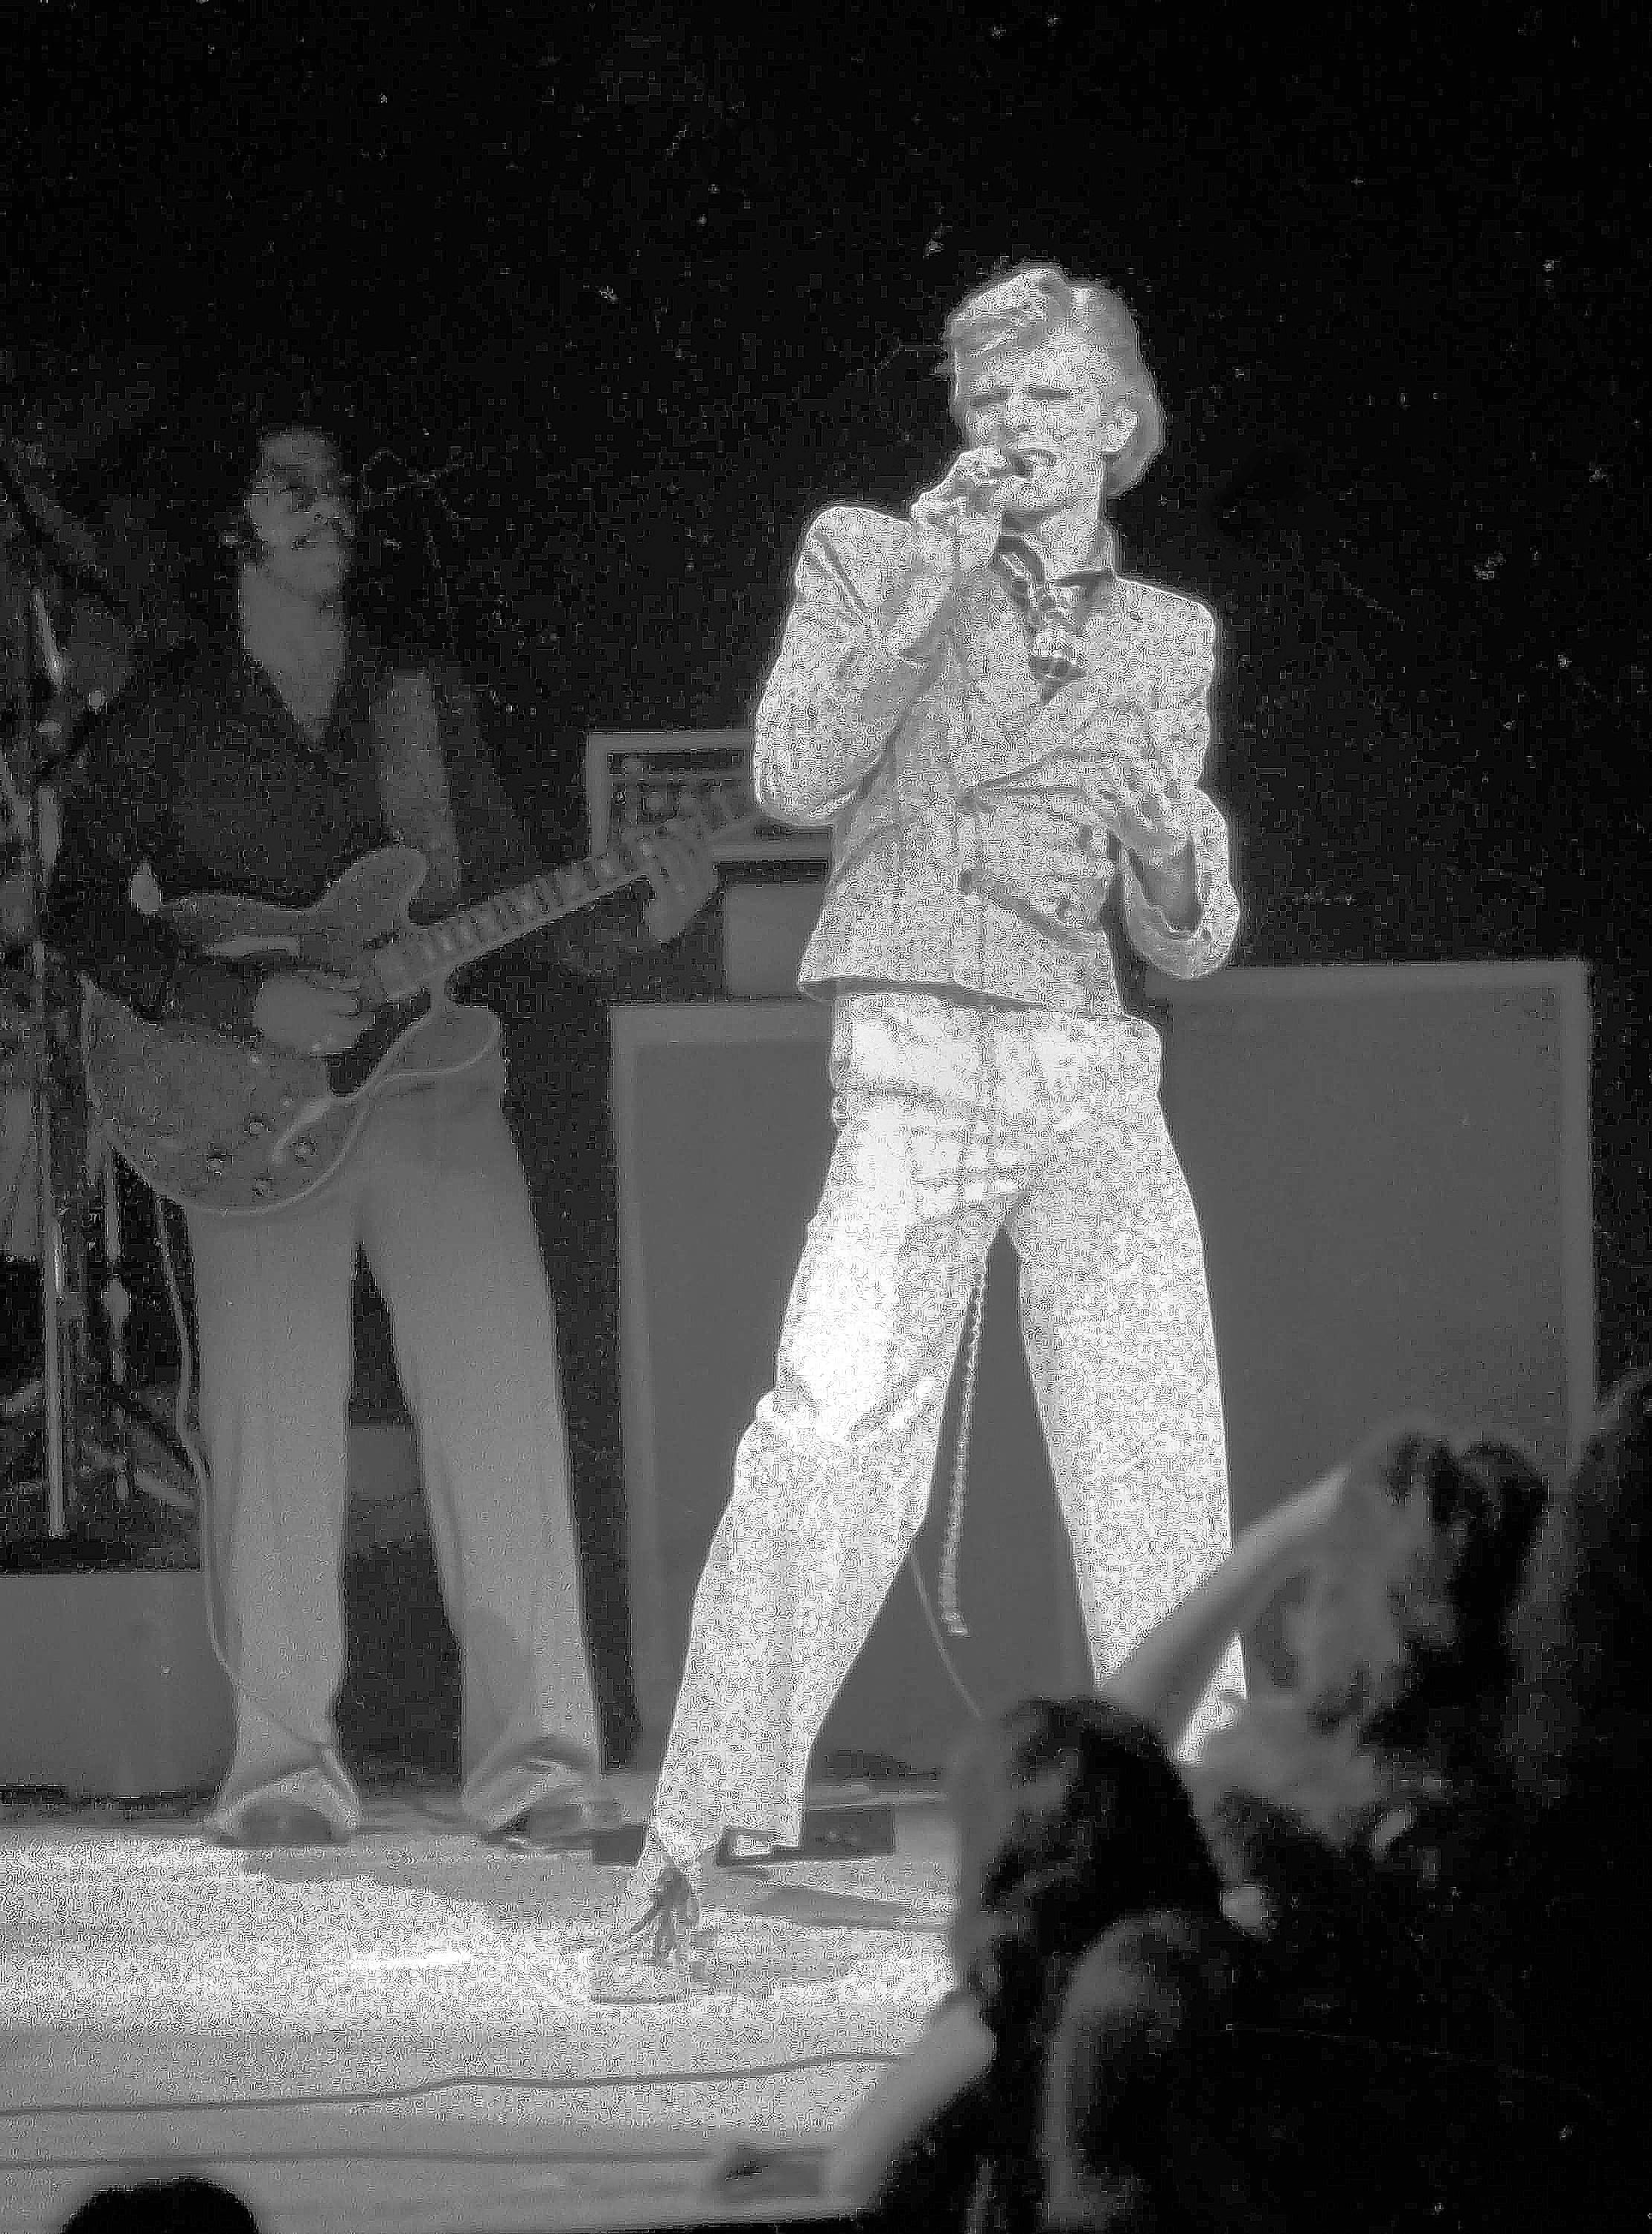 David Bowie performs at New York's Radio City Music Hall in 1974.